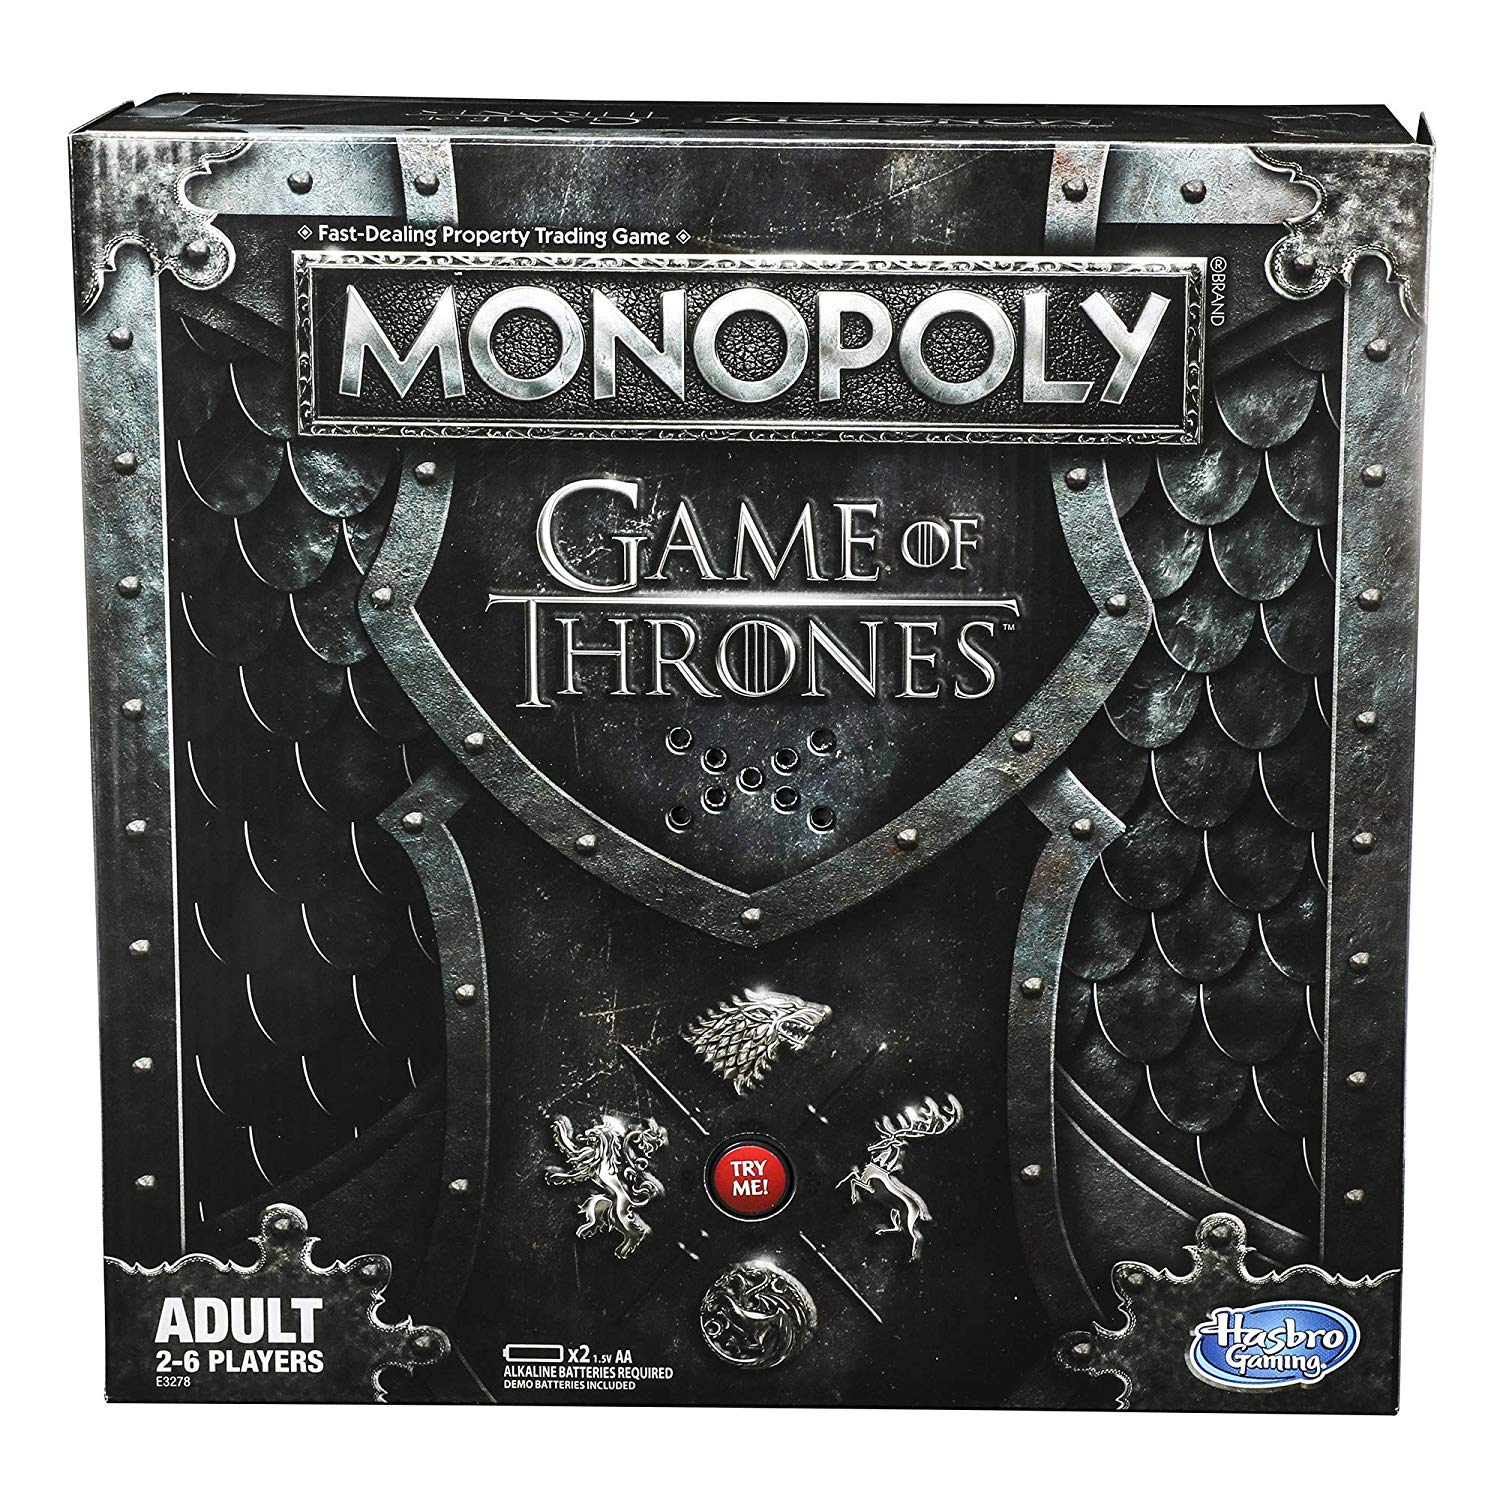 Monopoly Game of Thrones Board Game for Adults - Amazon $13.99